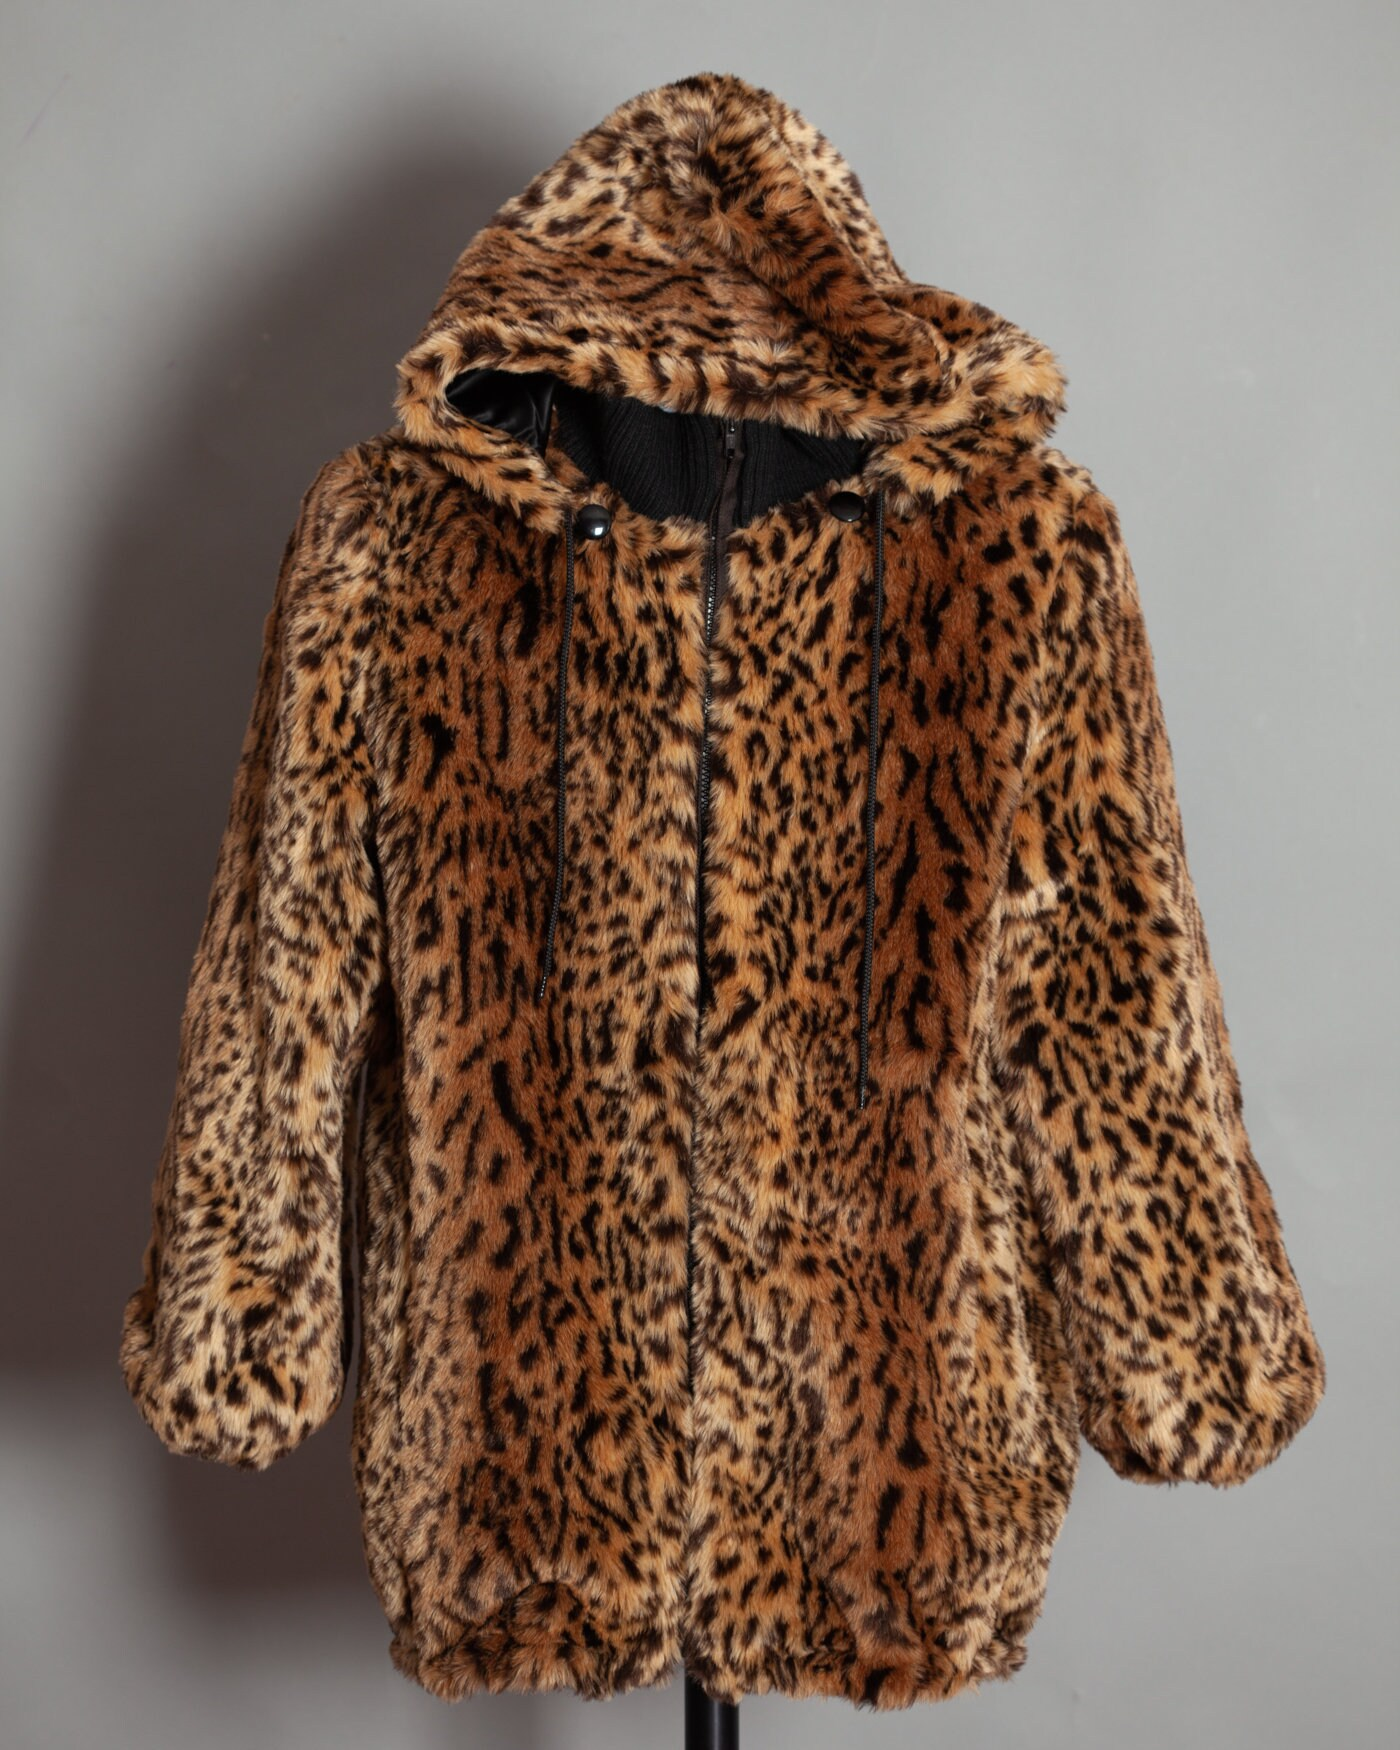 Faux Fur Leopard Ocelot Print Hooded Coat - MONTEREY FASHIONS